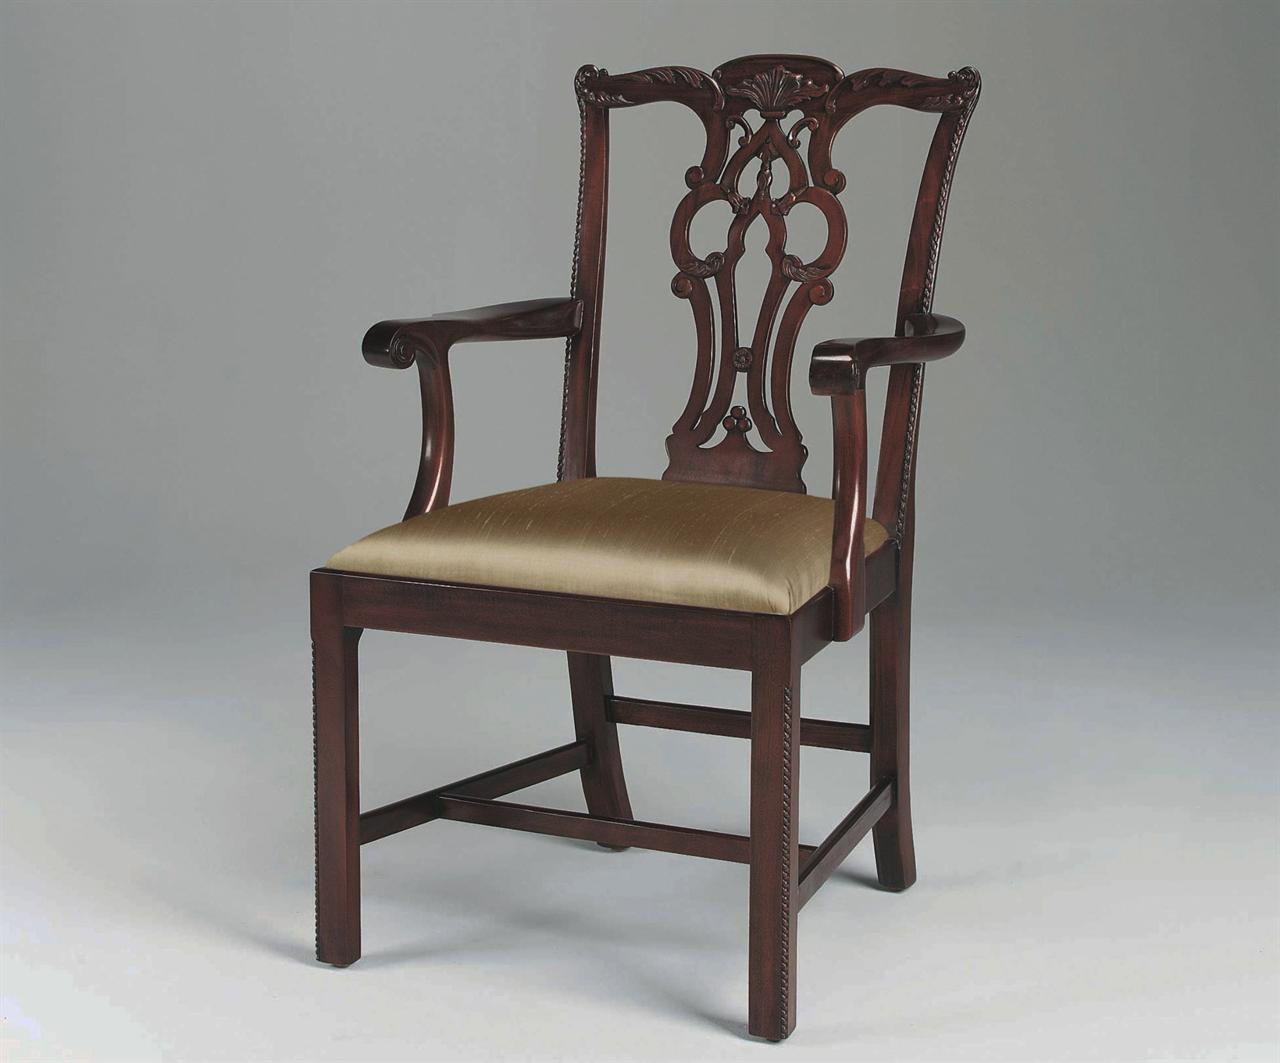 Mahogany straight leg chippendale chairs formal dining chairs for Formal dining chairs